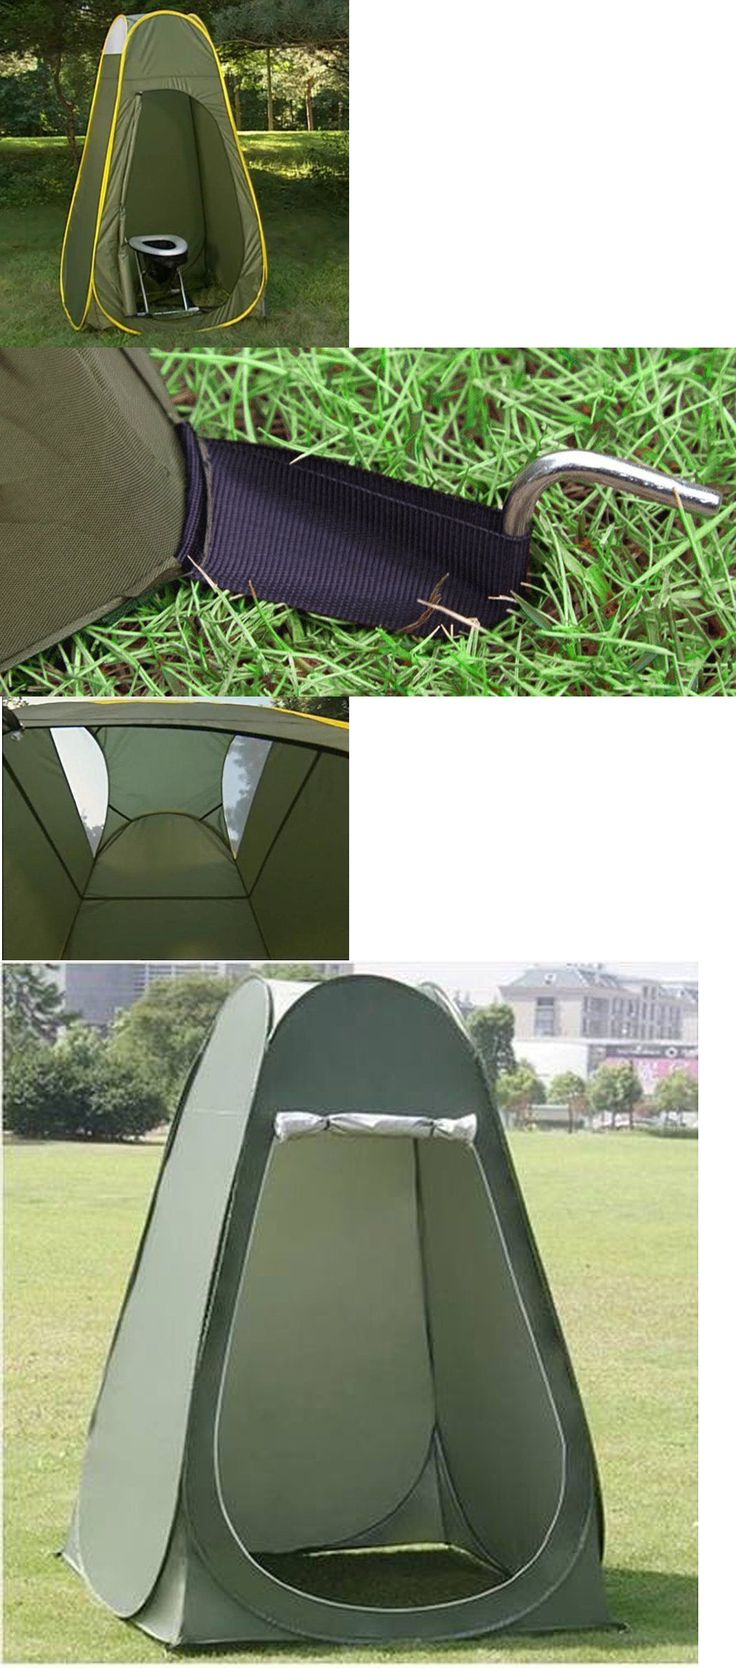 Other Camping Hygiene Accs 181400: Faswin Pop Up Pod Toilet Tent Privacy Shelter Tent Camping Shower Potable Outdoo -> BUY IT NOW ONLY: $33.79 on eBay!